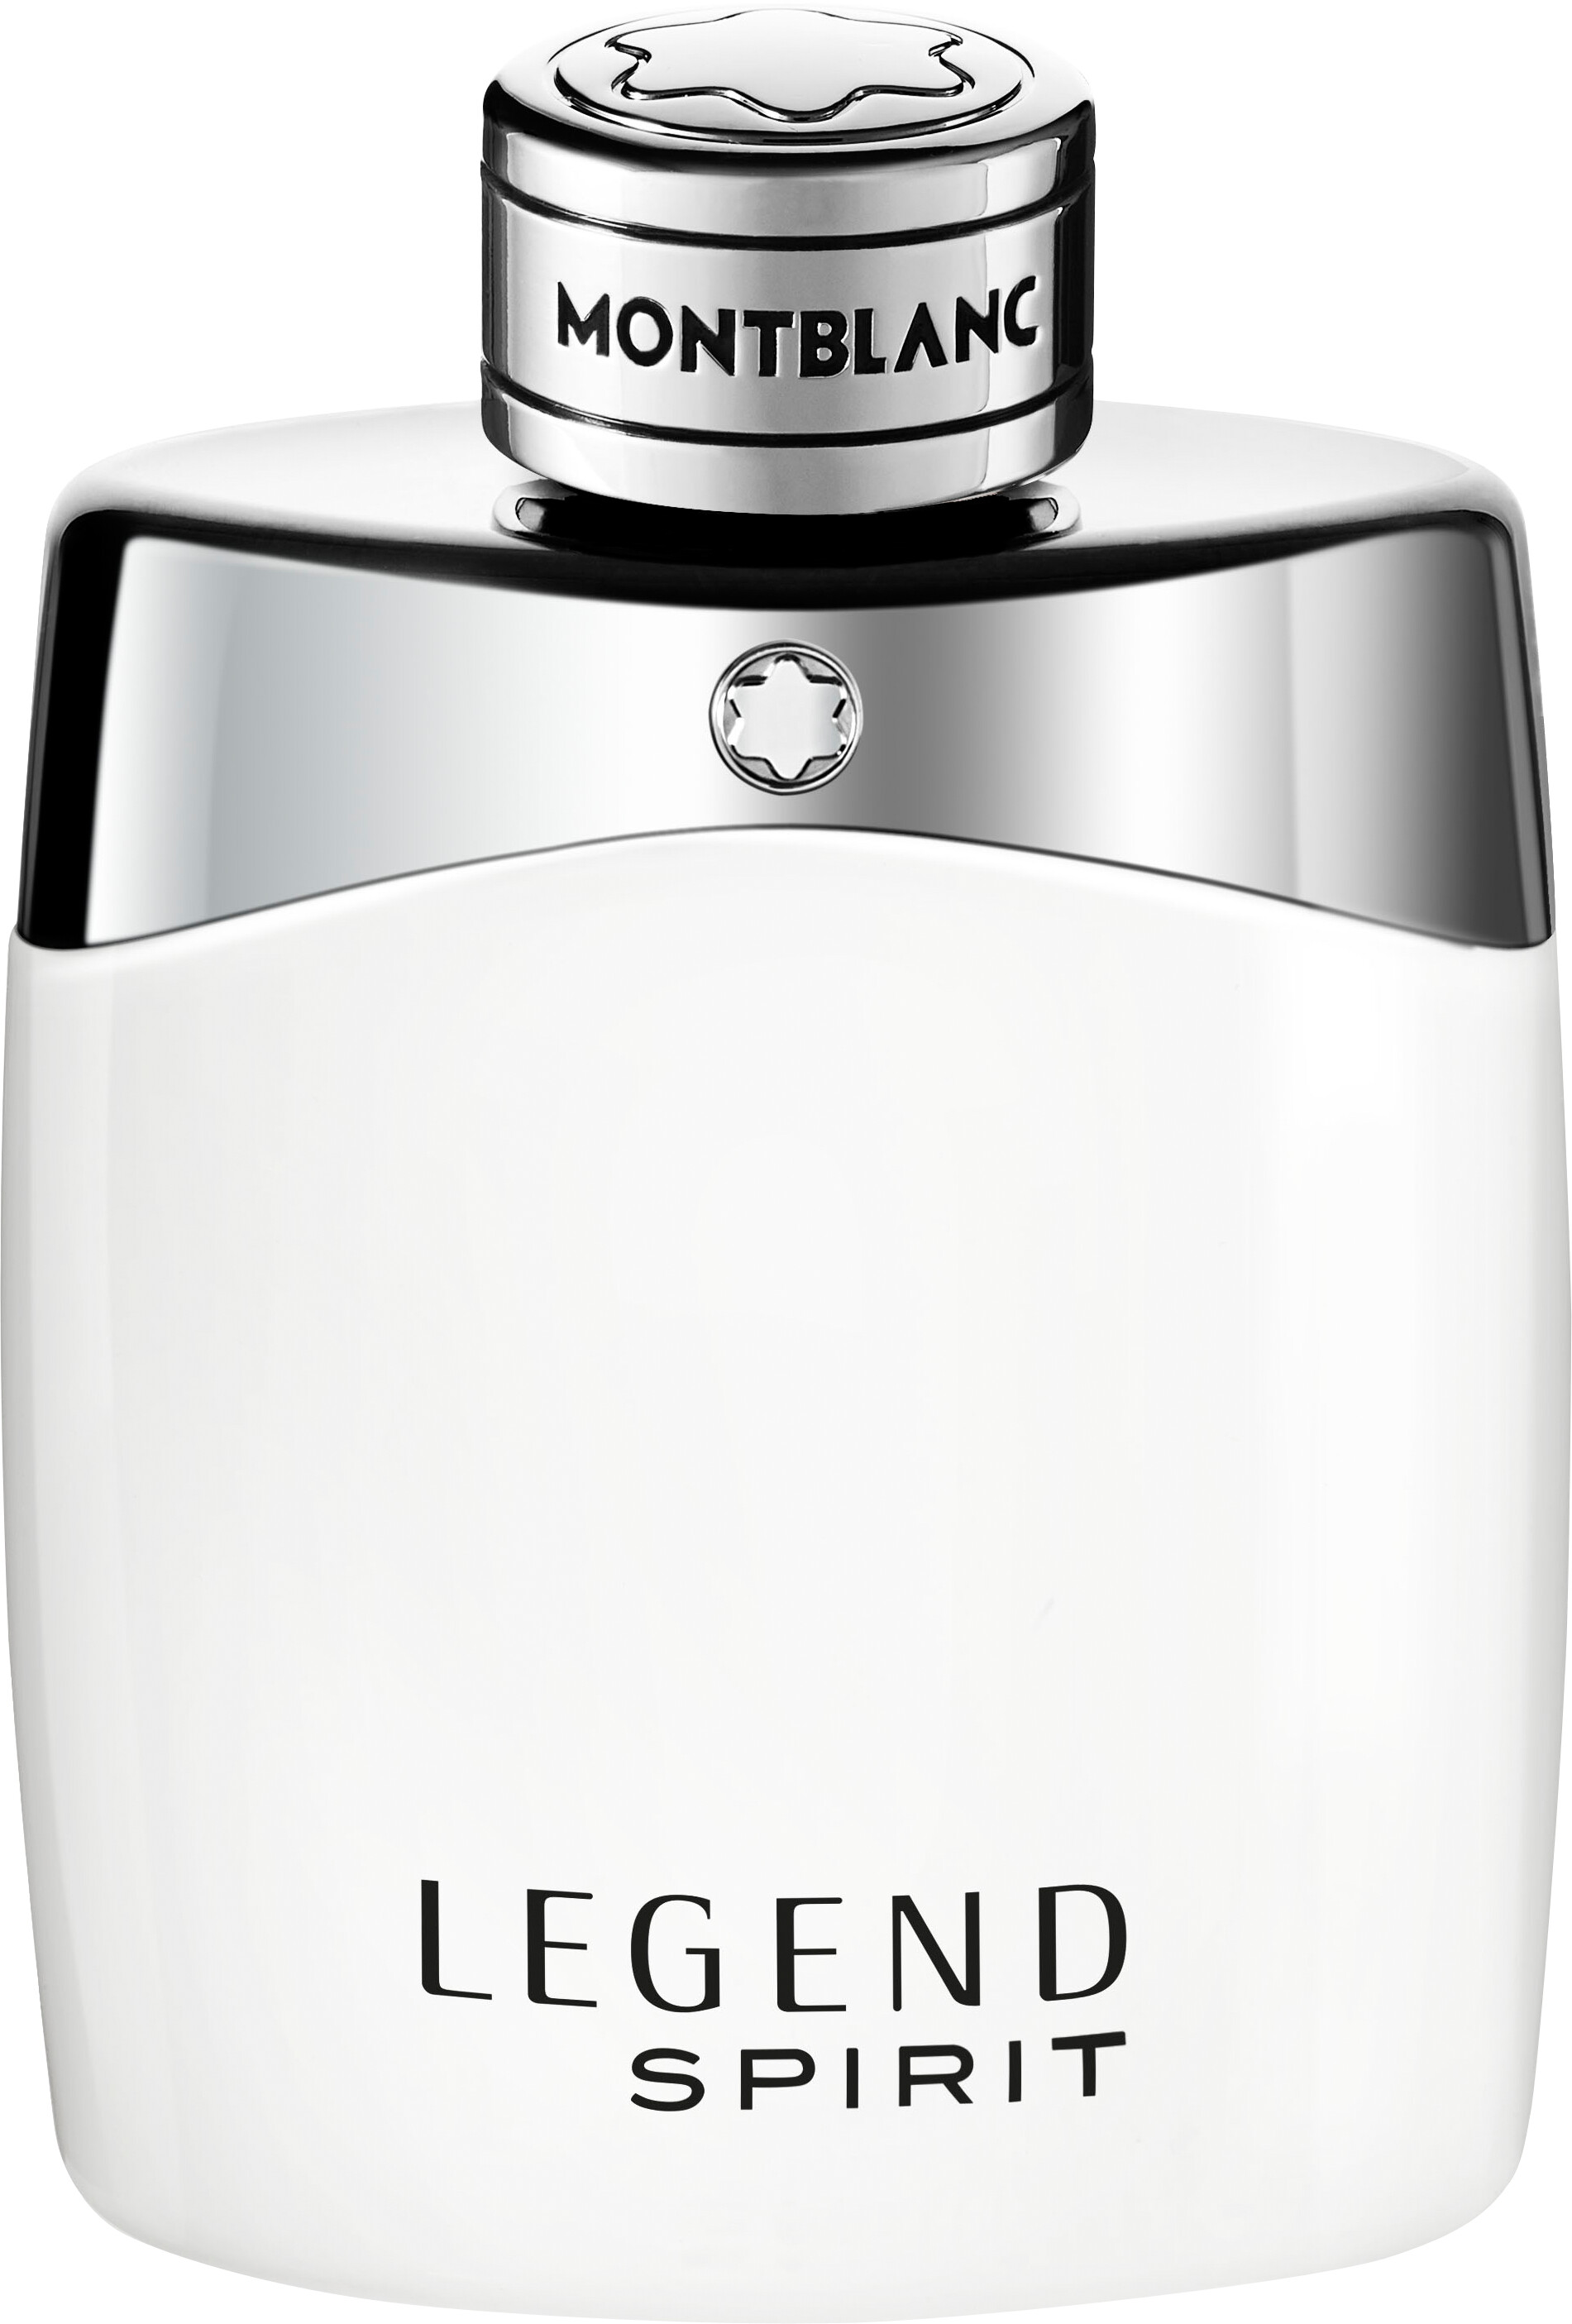 Montblanc legend spirit eau de toilette spray for Arrivee d eau toilette